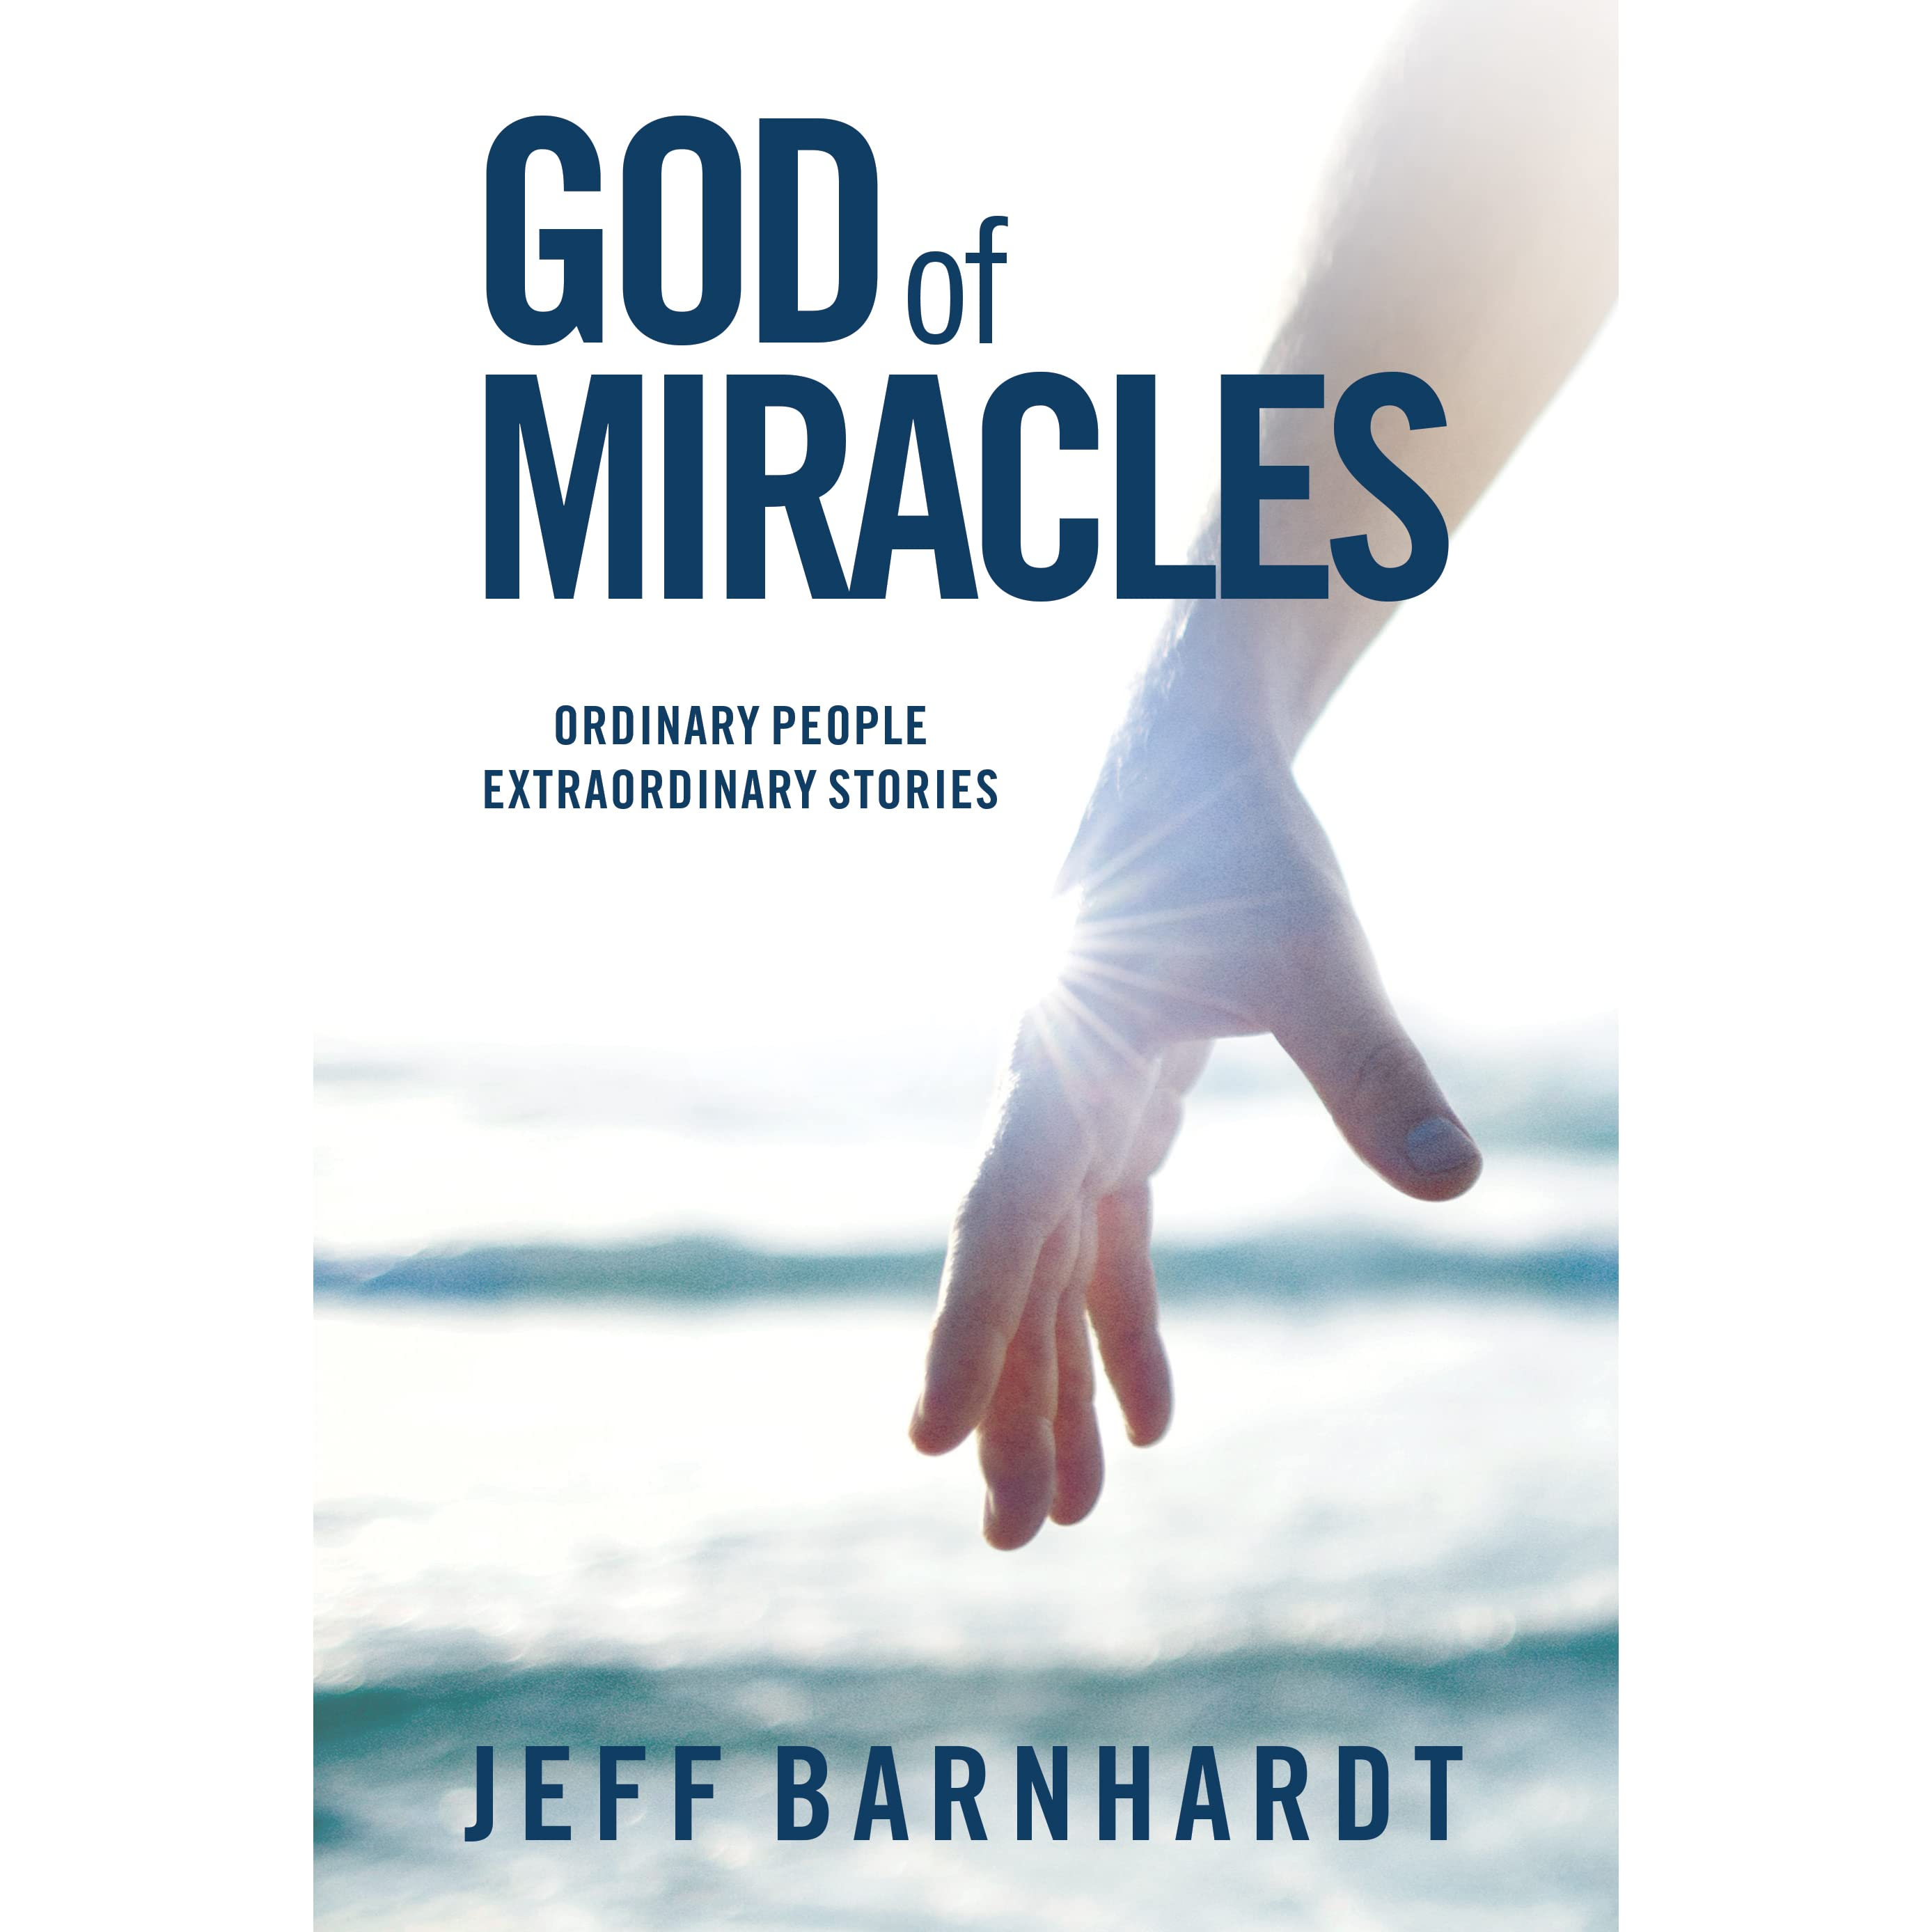 God of Miracles: Ordinary People Extraordinary Stories by